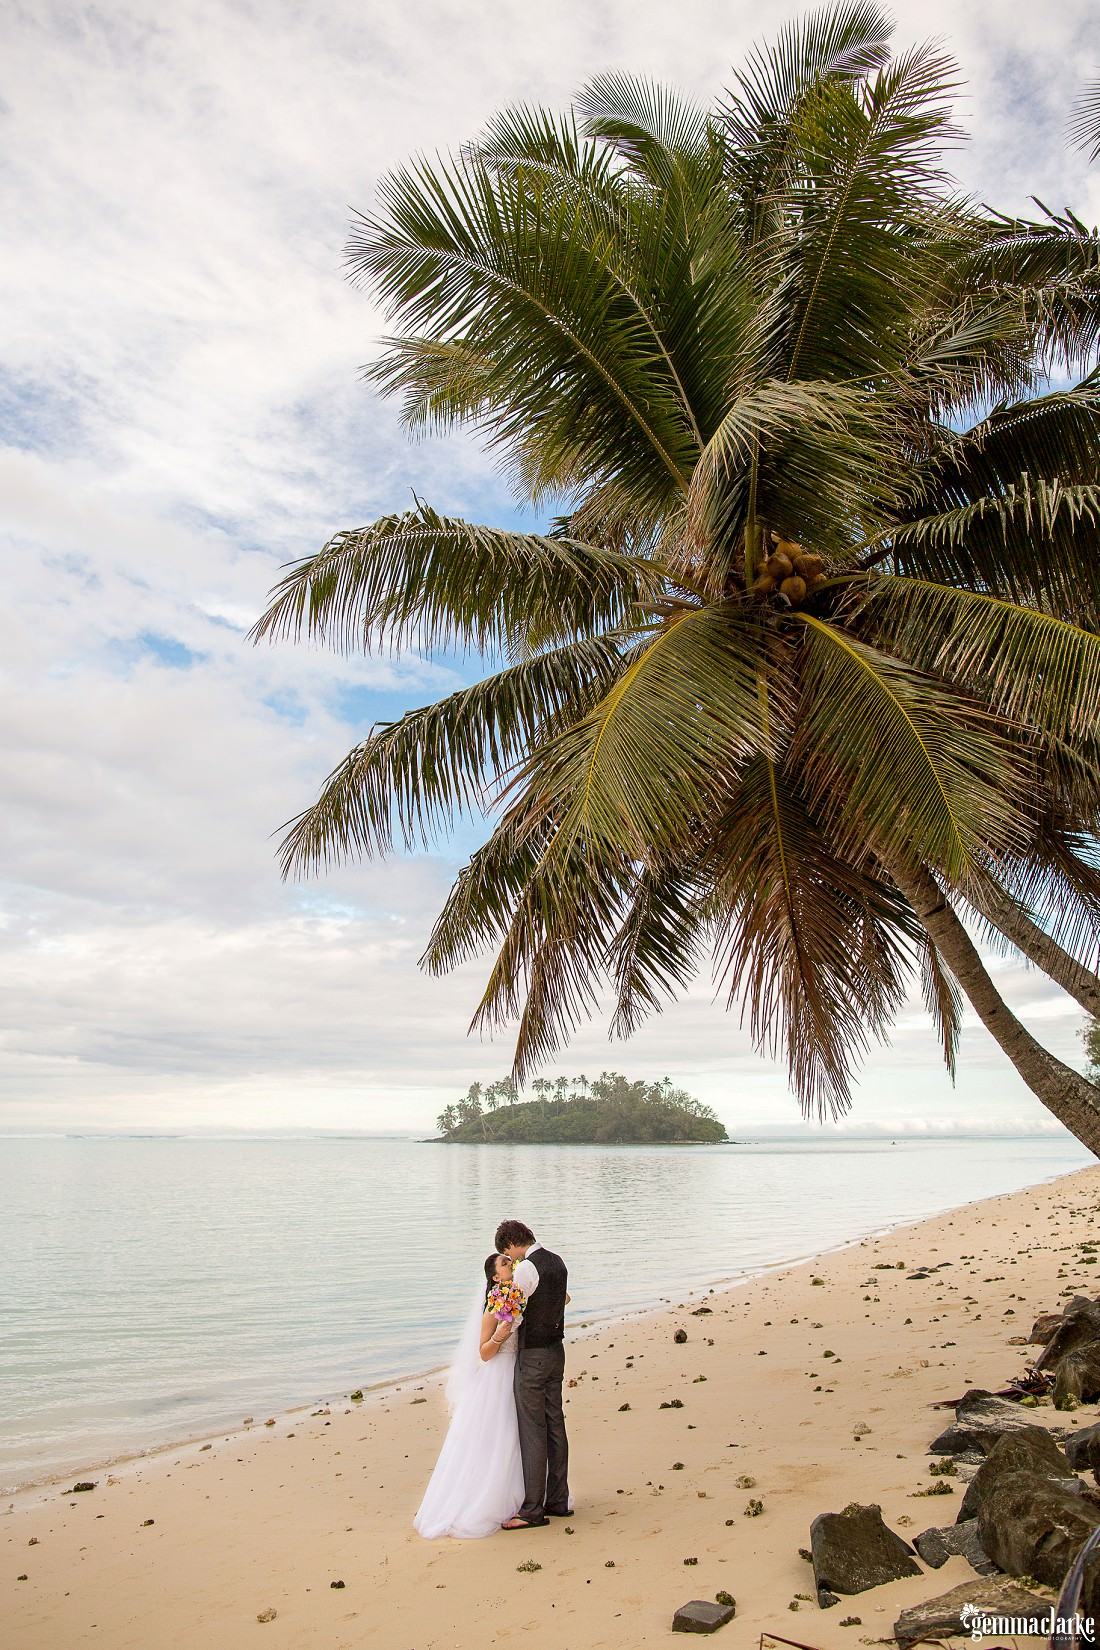 gemmaclarkephotography_south-pacific-destination-wedding_island-wedding_natalie-and-alex_0056